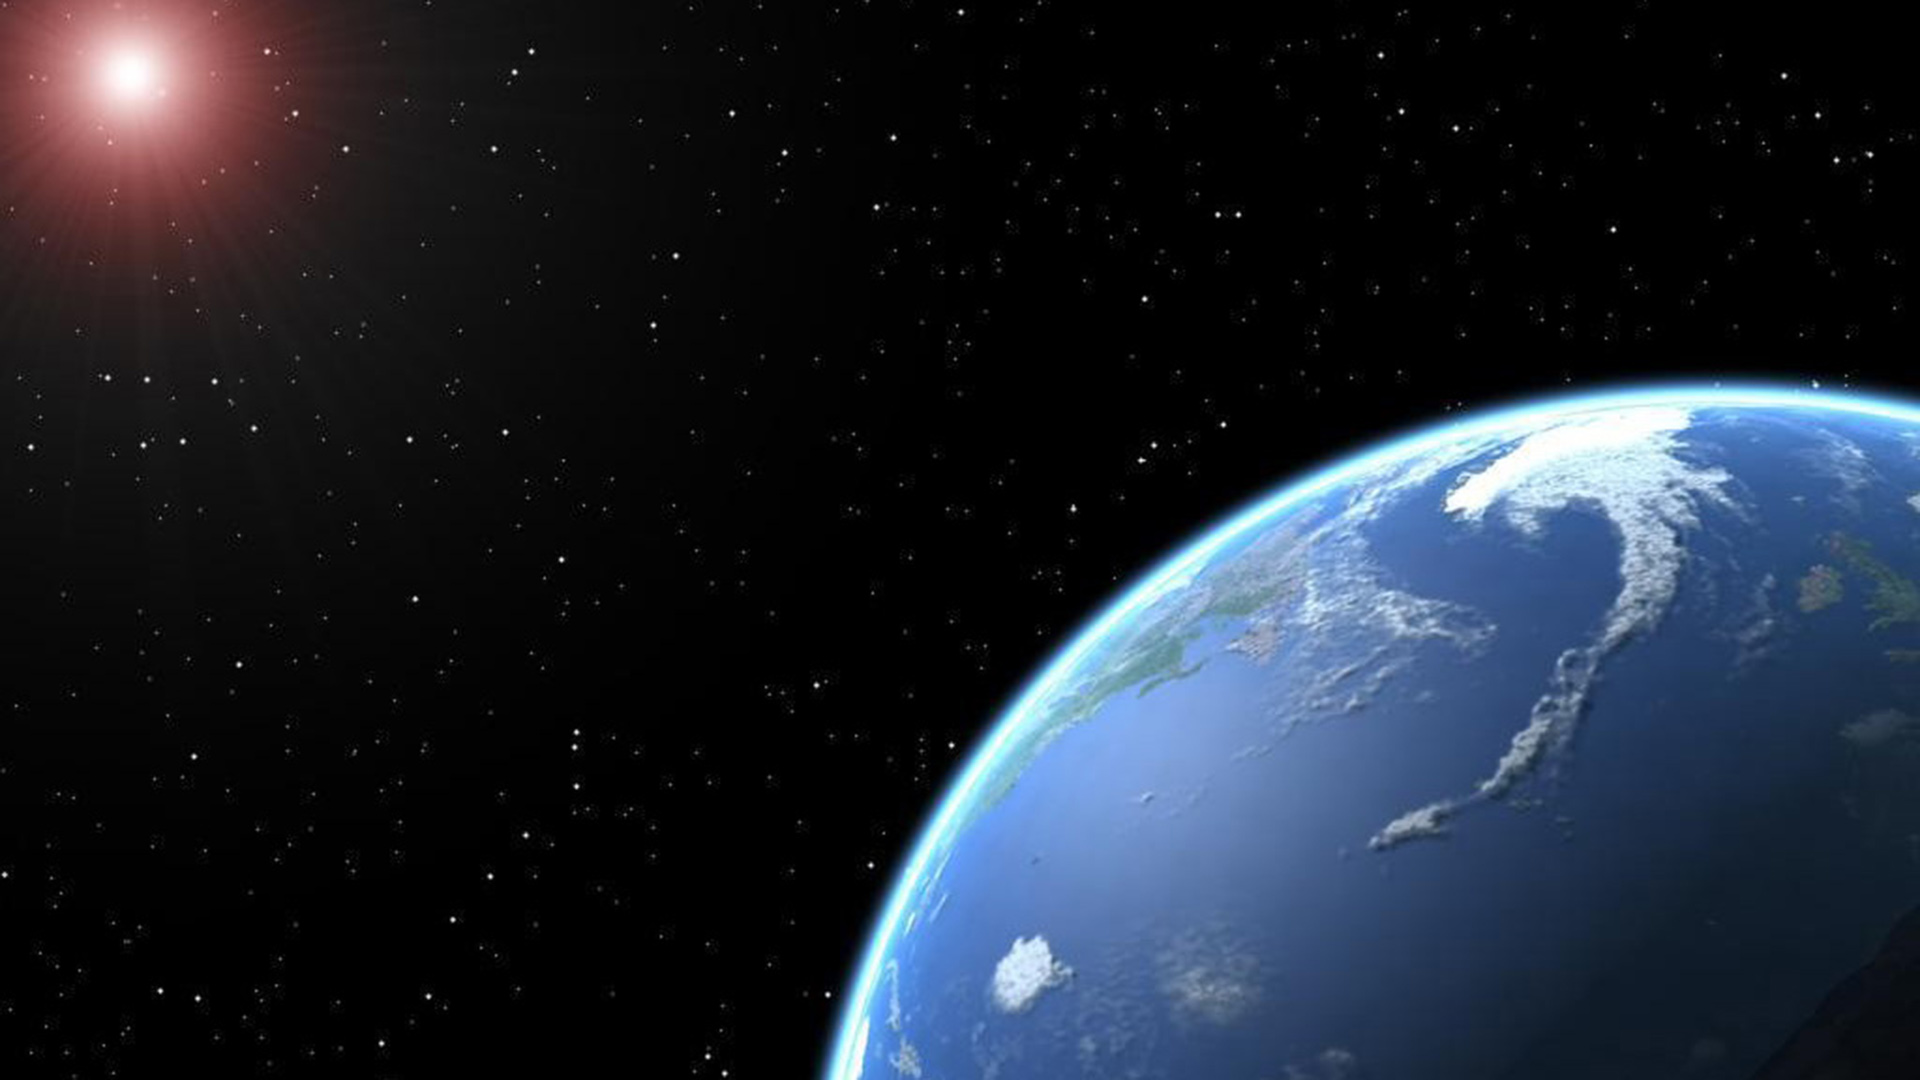 Outer Space Earth Background , HD Wallpaper & Backgrounds